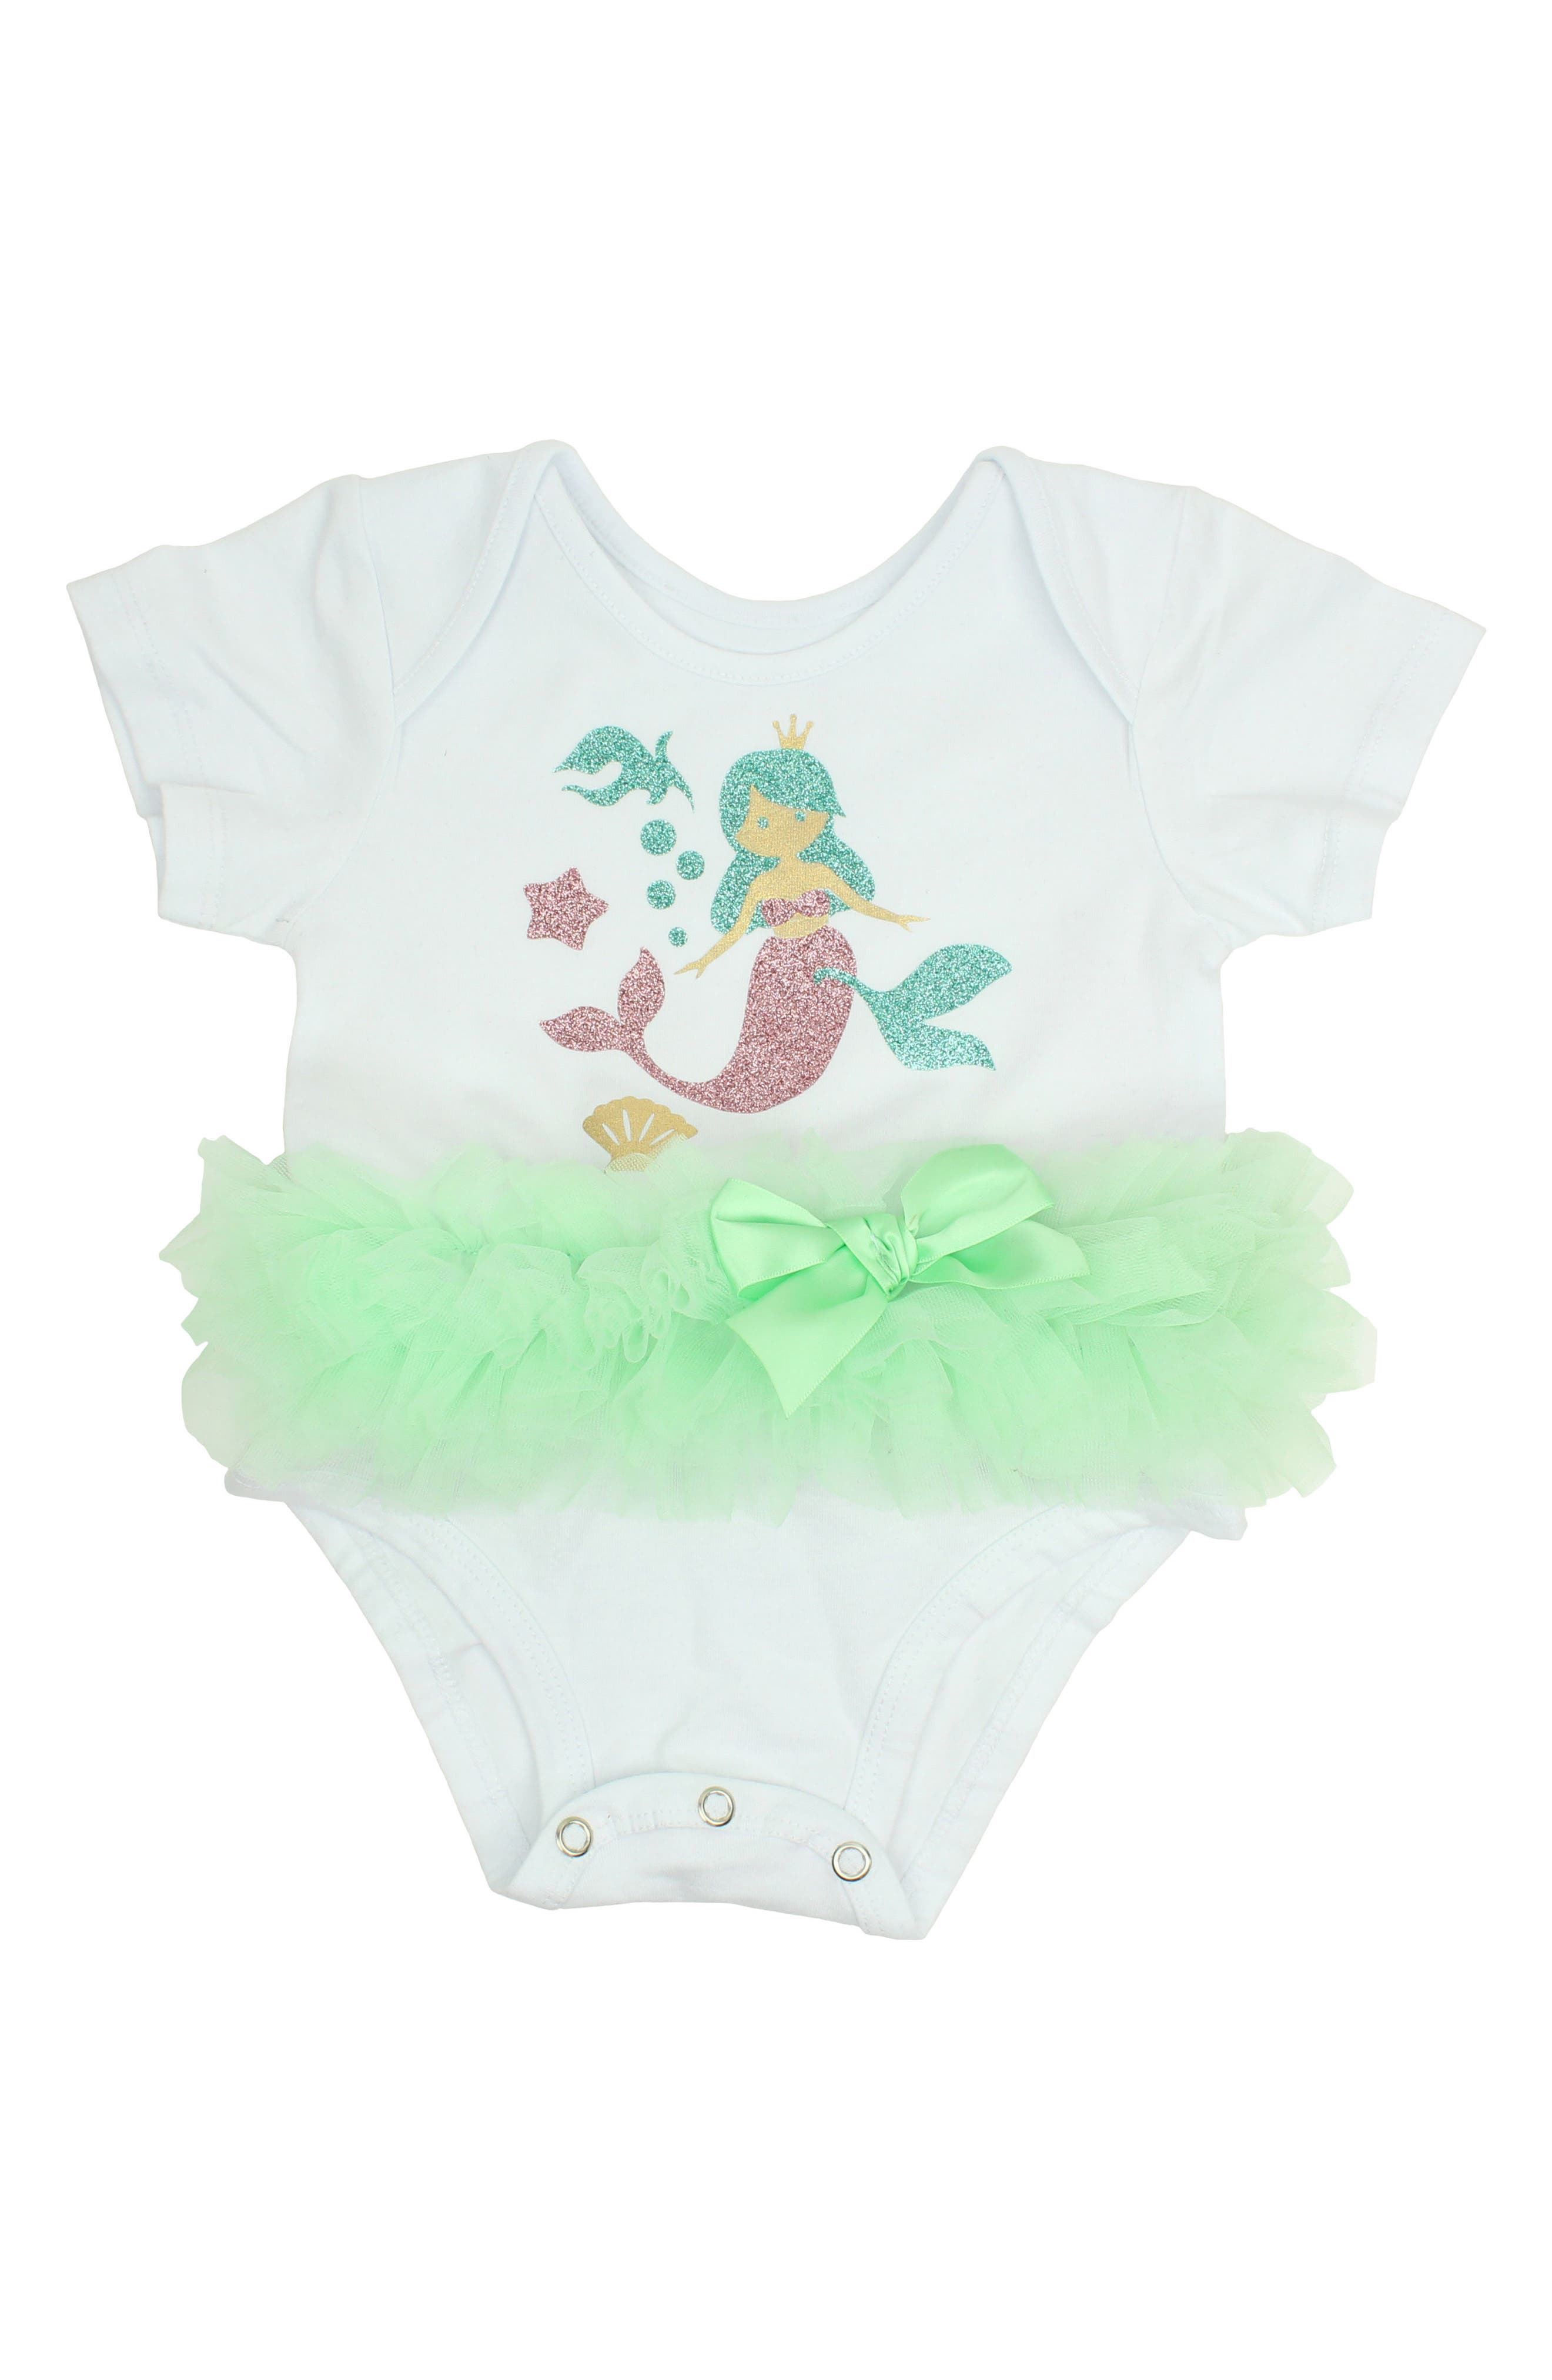 Mermaid Tutu Bodysuit,                             Main thumbnail 1, color,